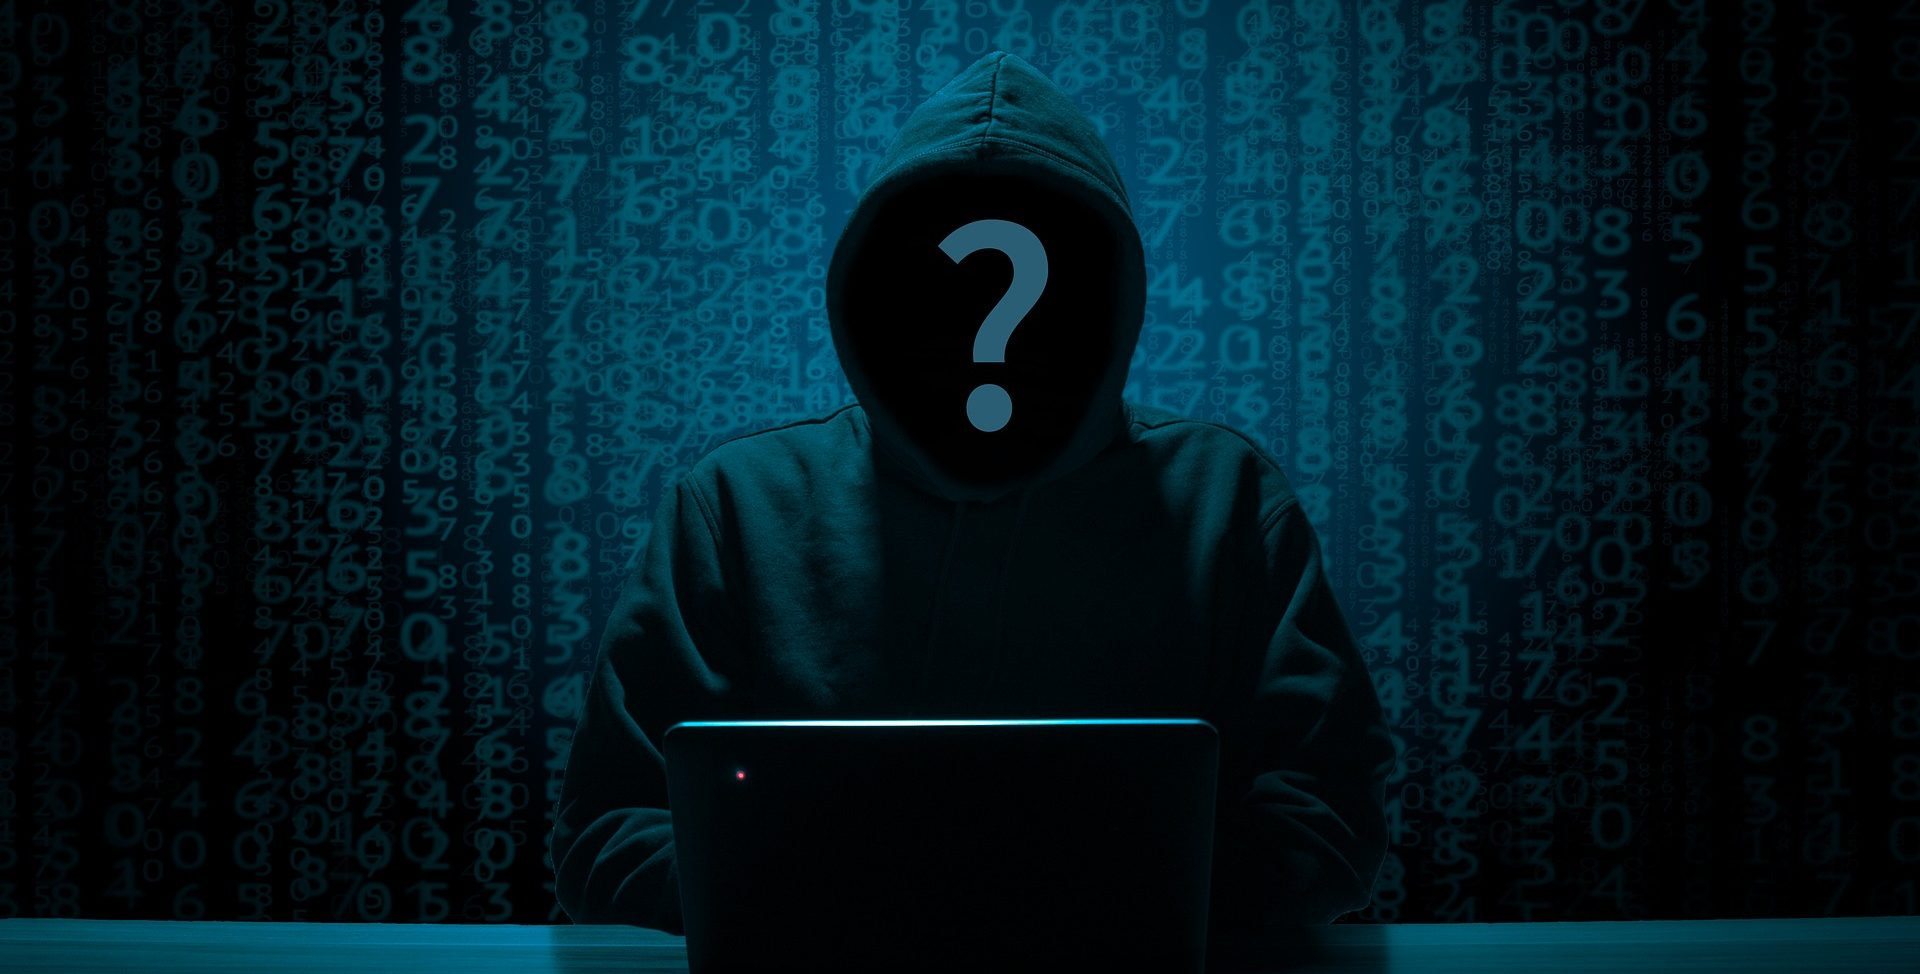 Jisc are not confident universities are equipped with adequate cybersecurity after it successfully hacked 50 institutions